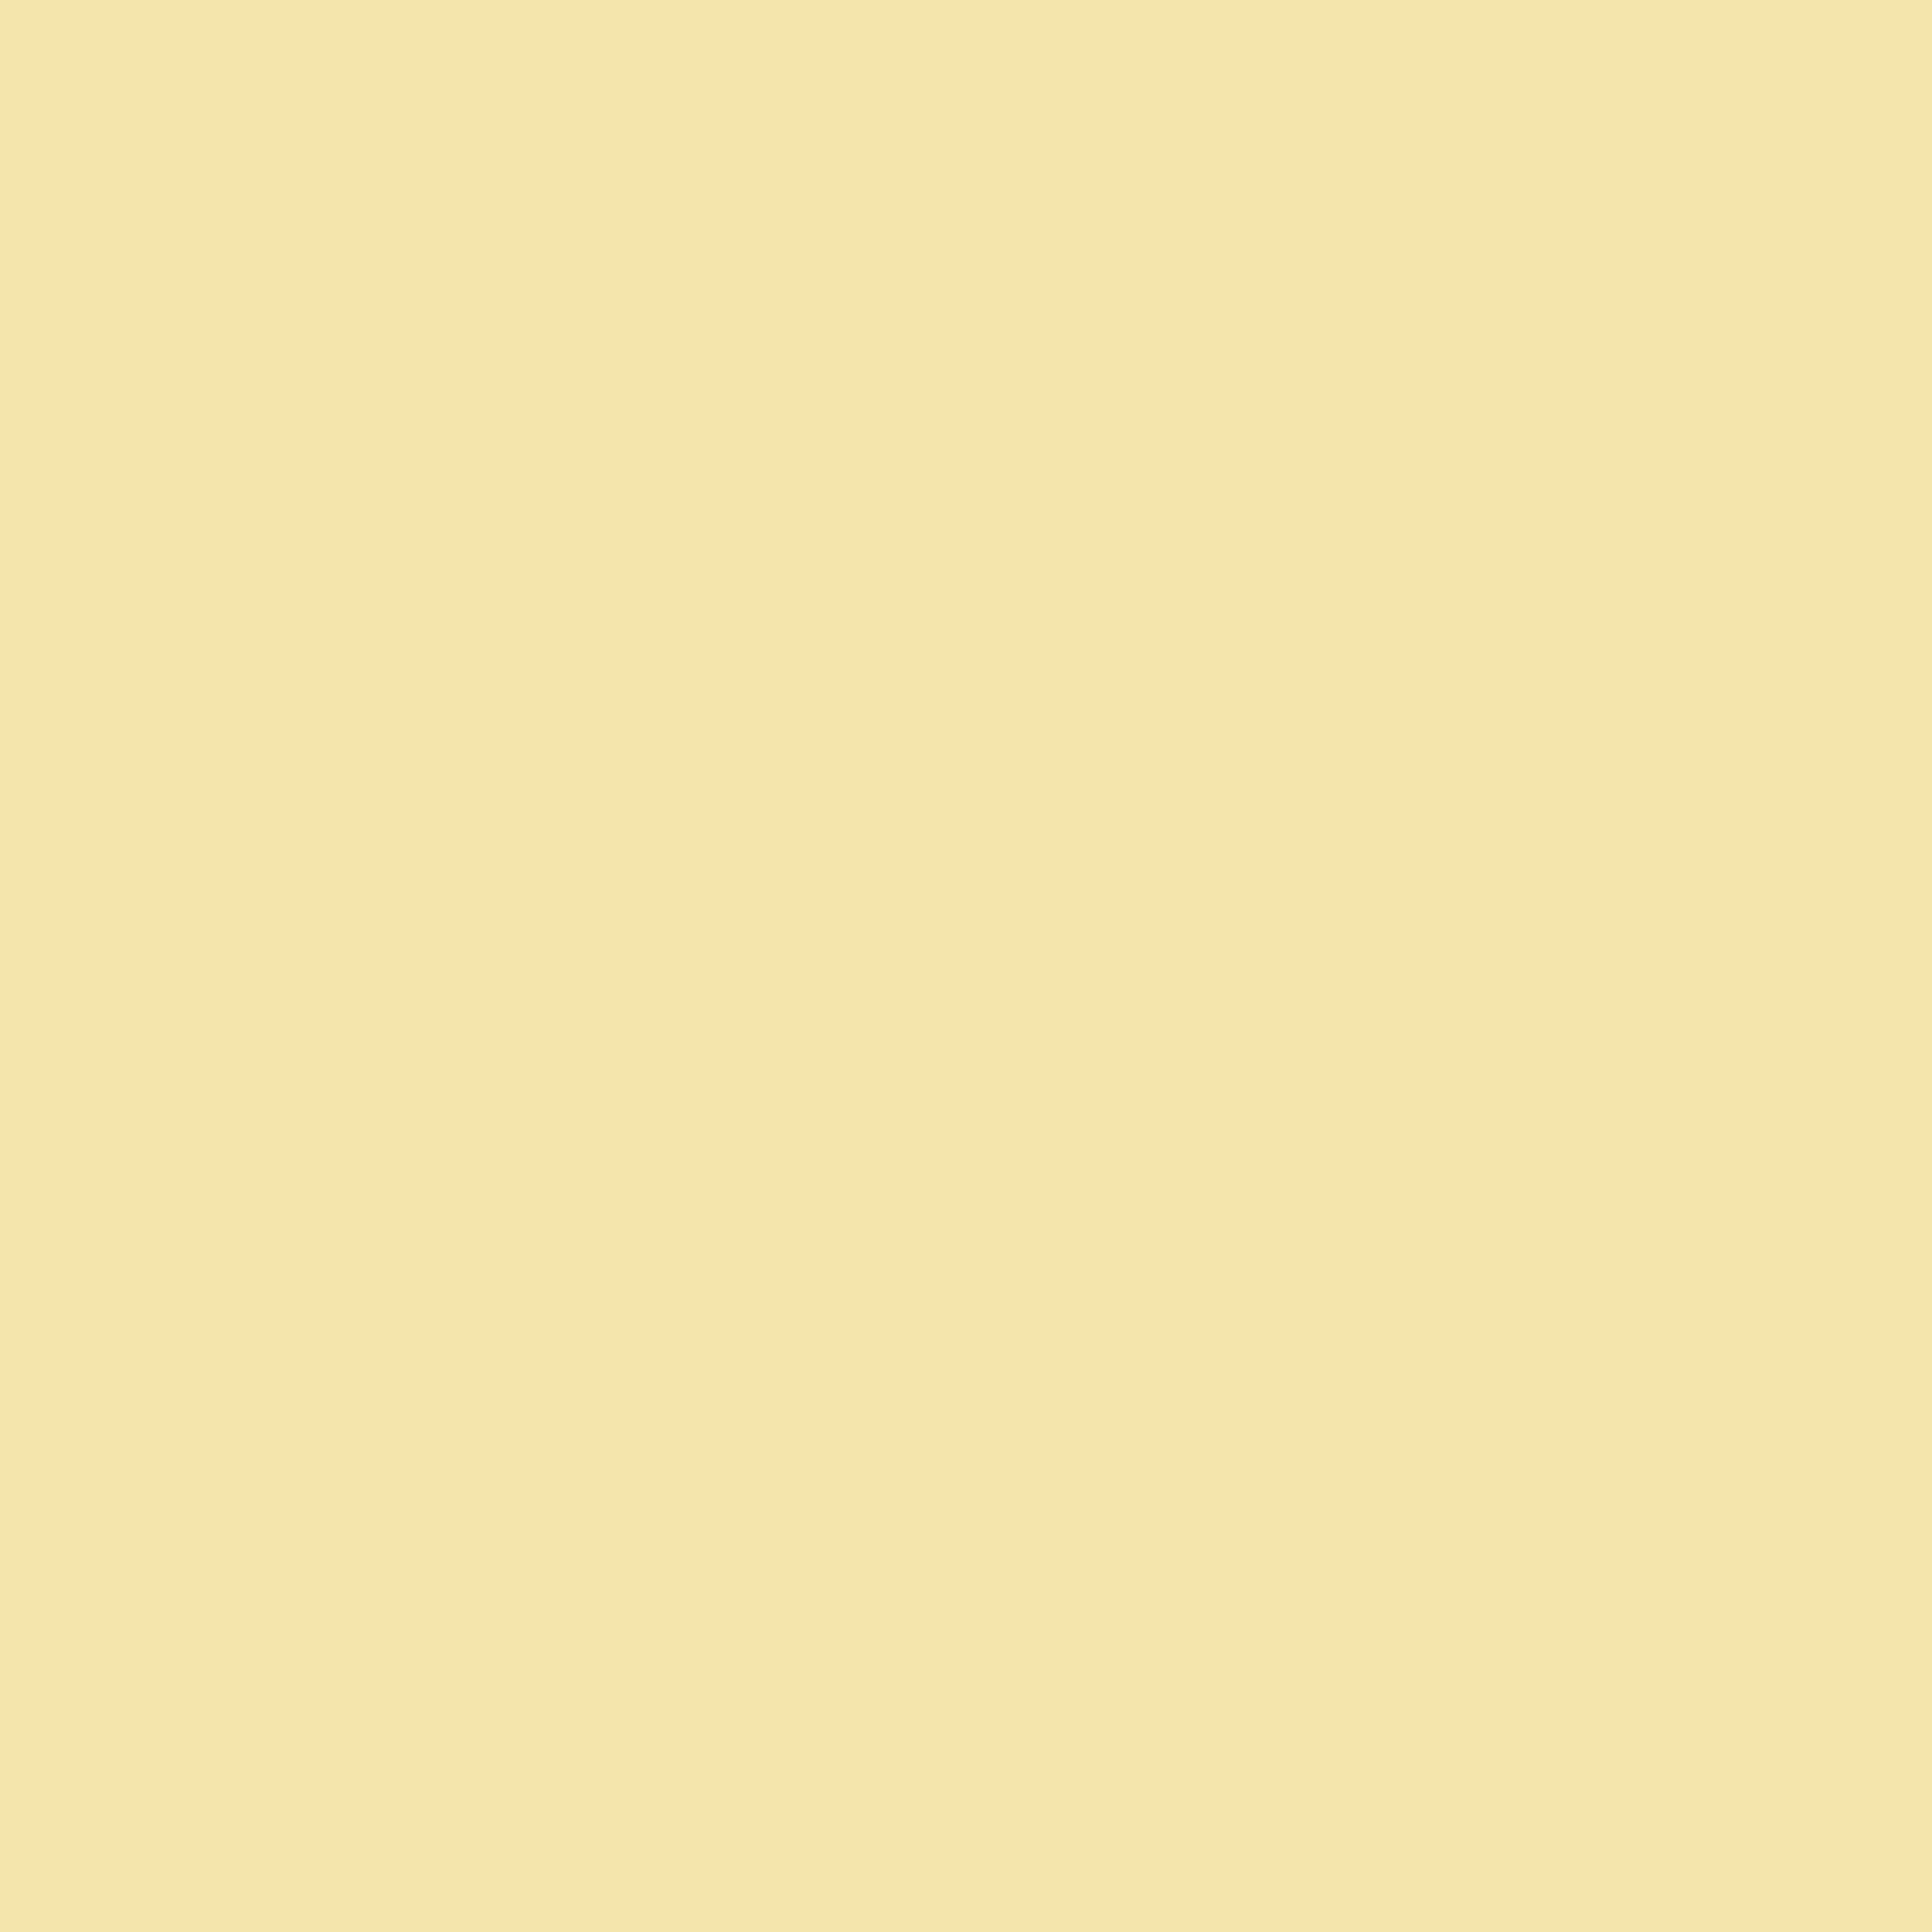 2048x2048 Medium Champagne Solid Color Background